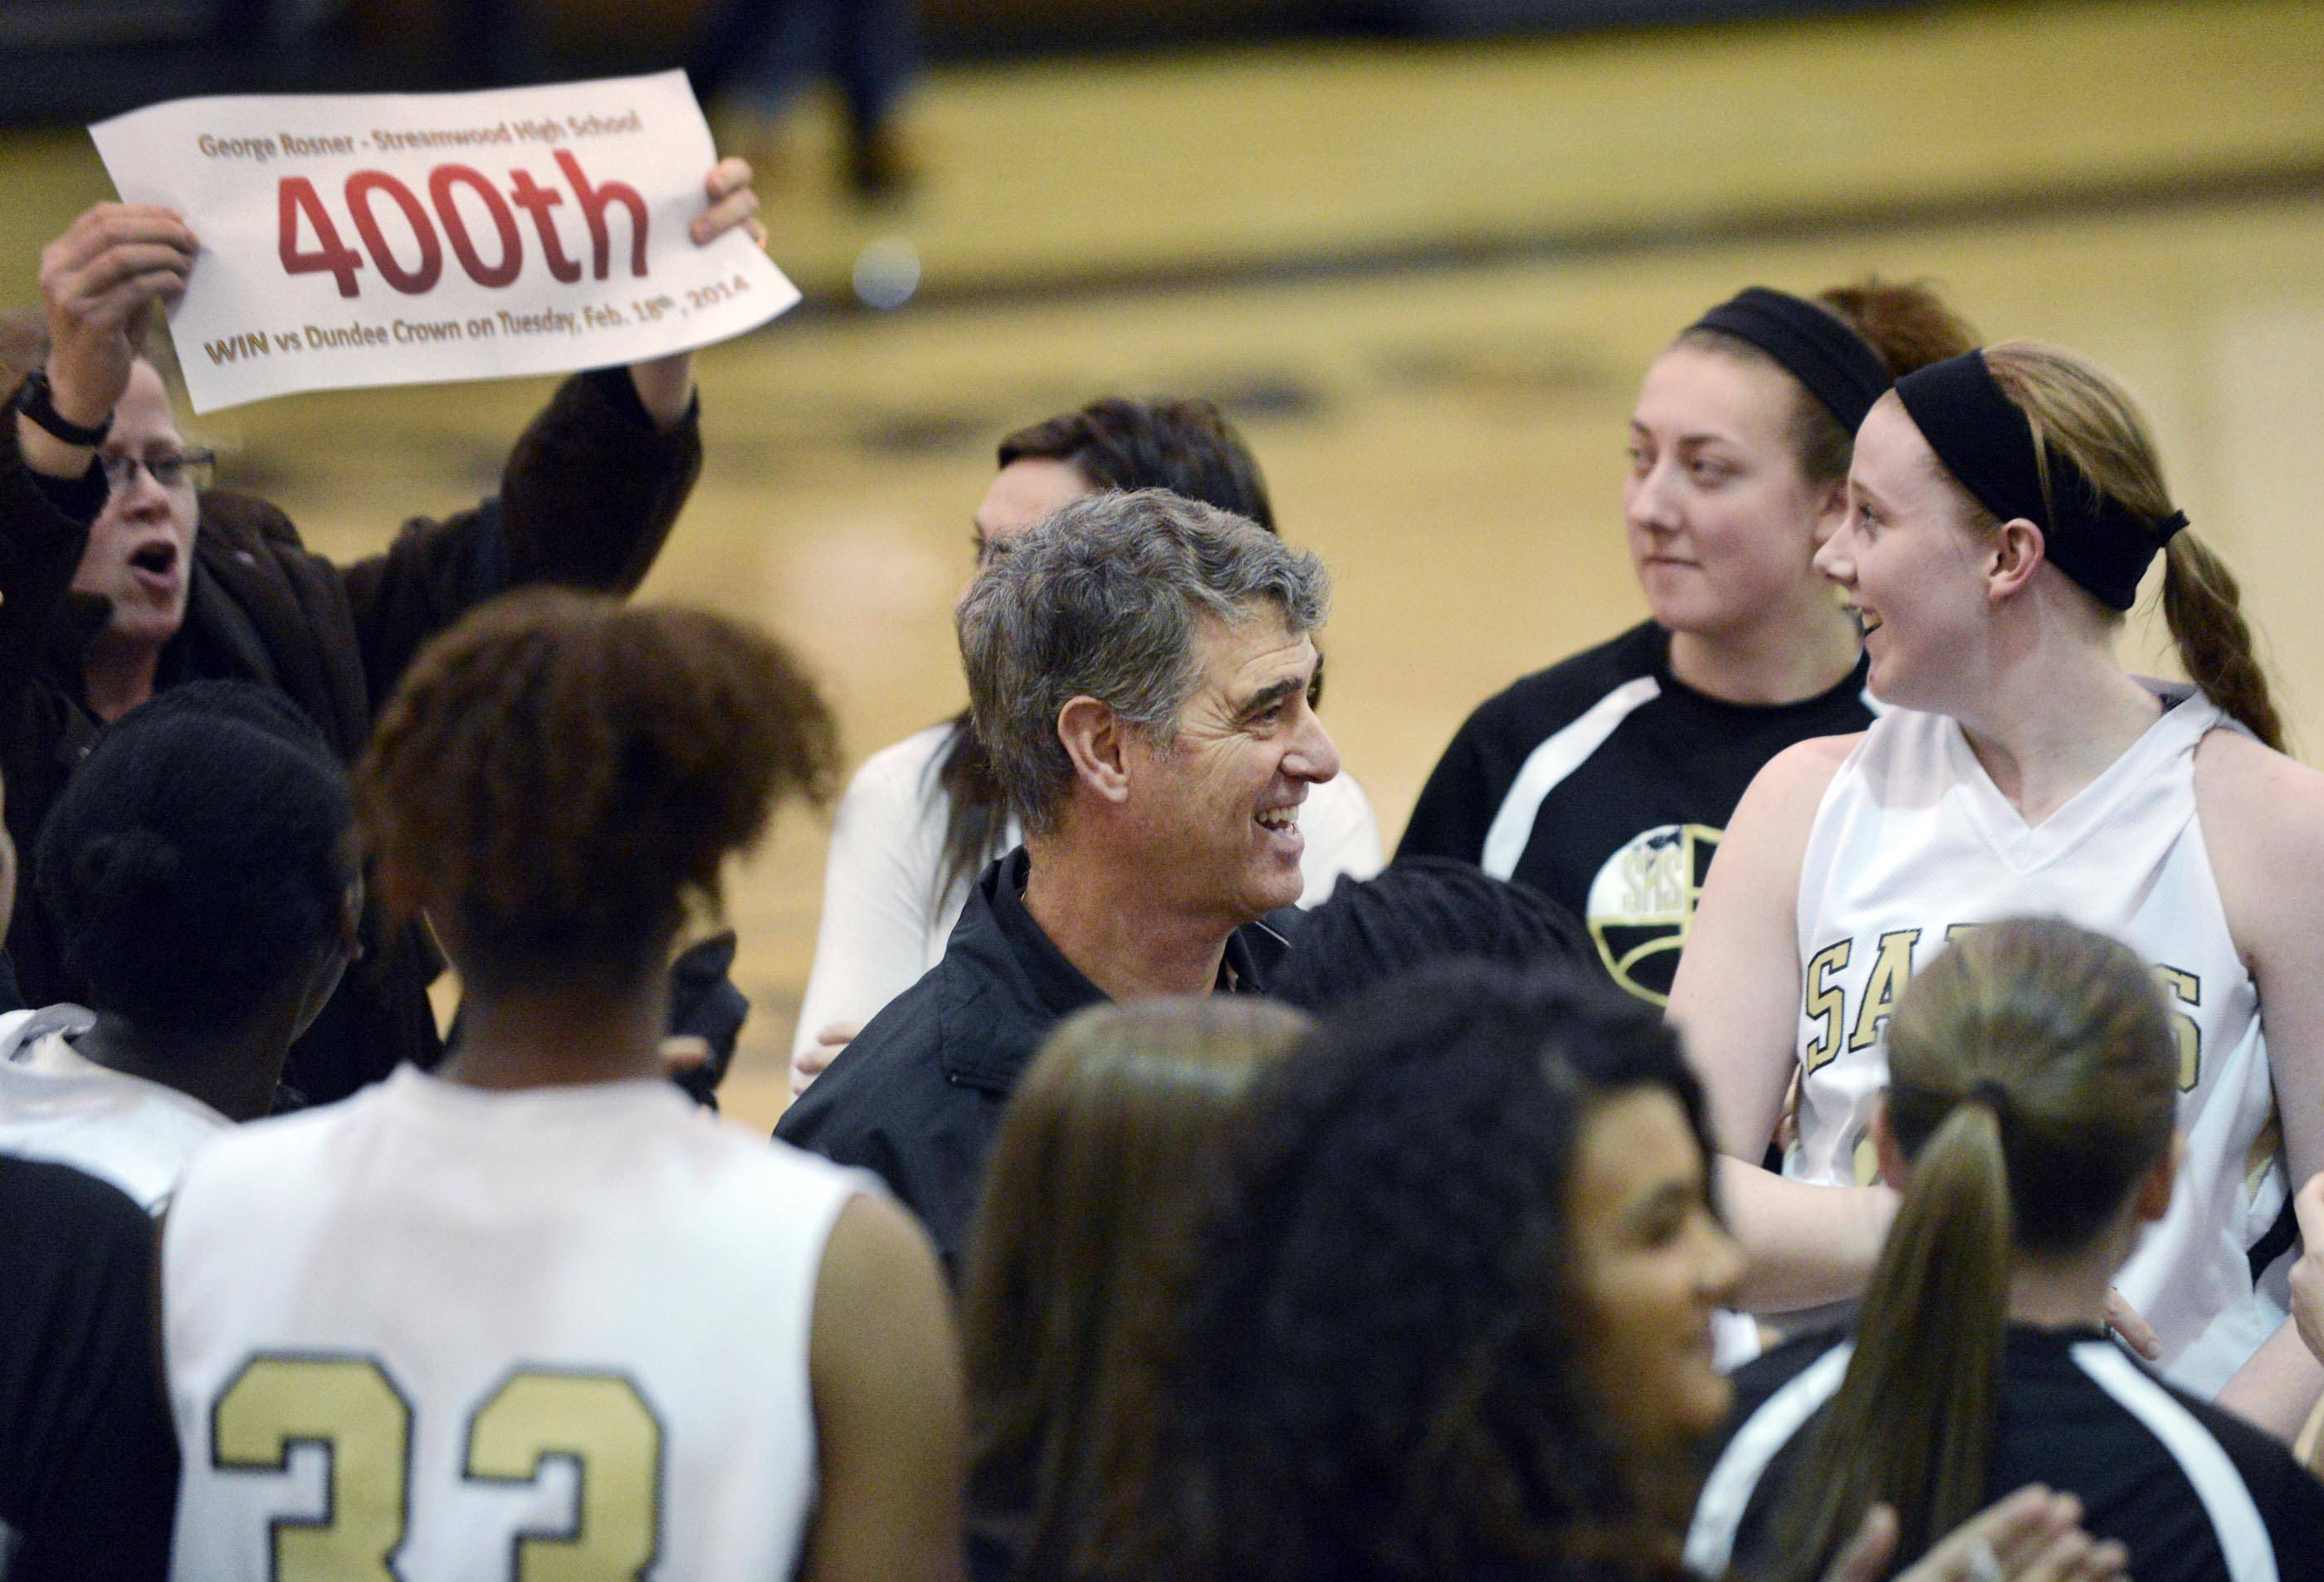 Streamwood head coach George Rosner smiles with his team after they defeated Dundee-Crown Tuesday in a regional semifinal game in Algonquin. It was his 400th career win.